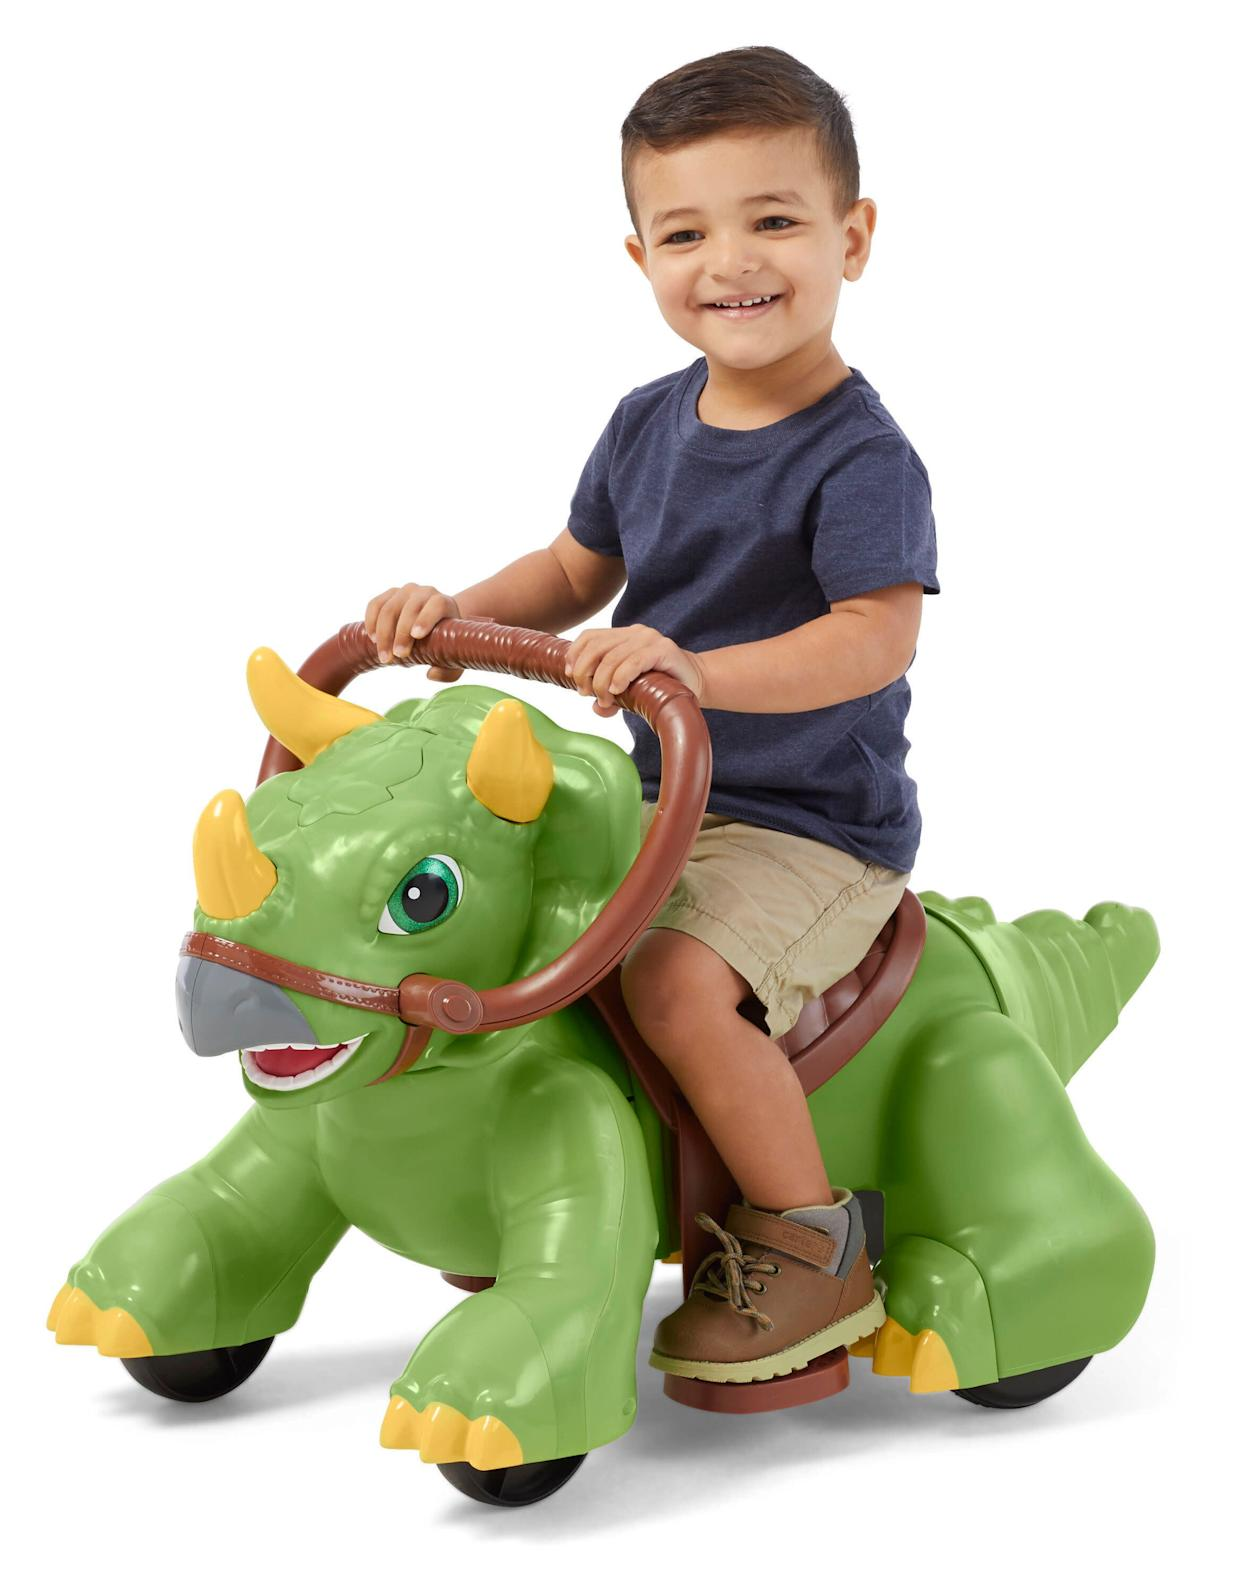 "Get ready for tons of prehistoric fun with the Rideamals Dinosaur by Kid Trax! This tot-sized triceratops features multiple types of interactive play: feed, pet, walk, and ride. Watch your child&rsquo;s eyes light up as their new friend responds to them &ndash; including 20 unique sounds. A (plastic) fern and grapes are included for &ldquo;feeding&rdquo; the dinosaur.&nbsp; <strong><a href=""https://fave.co/2PFLRLp"" rel=""nofollow noopener"" target=""_blank"" data-ylk=""slk:Find it for $79 at Walmart"" class=""link rapid-noclick-resp"">Find it for $79 at Walmart</a>.</strong>"